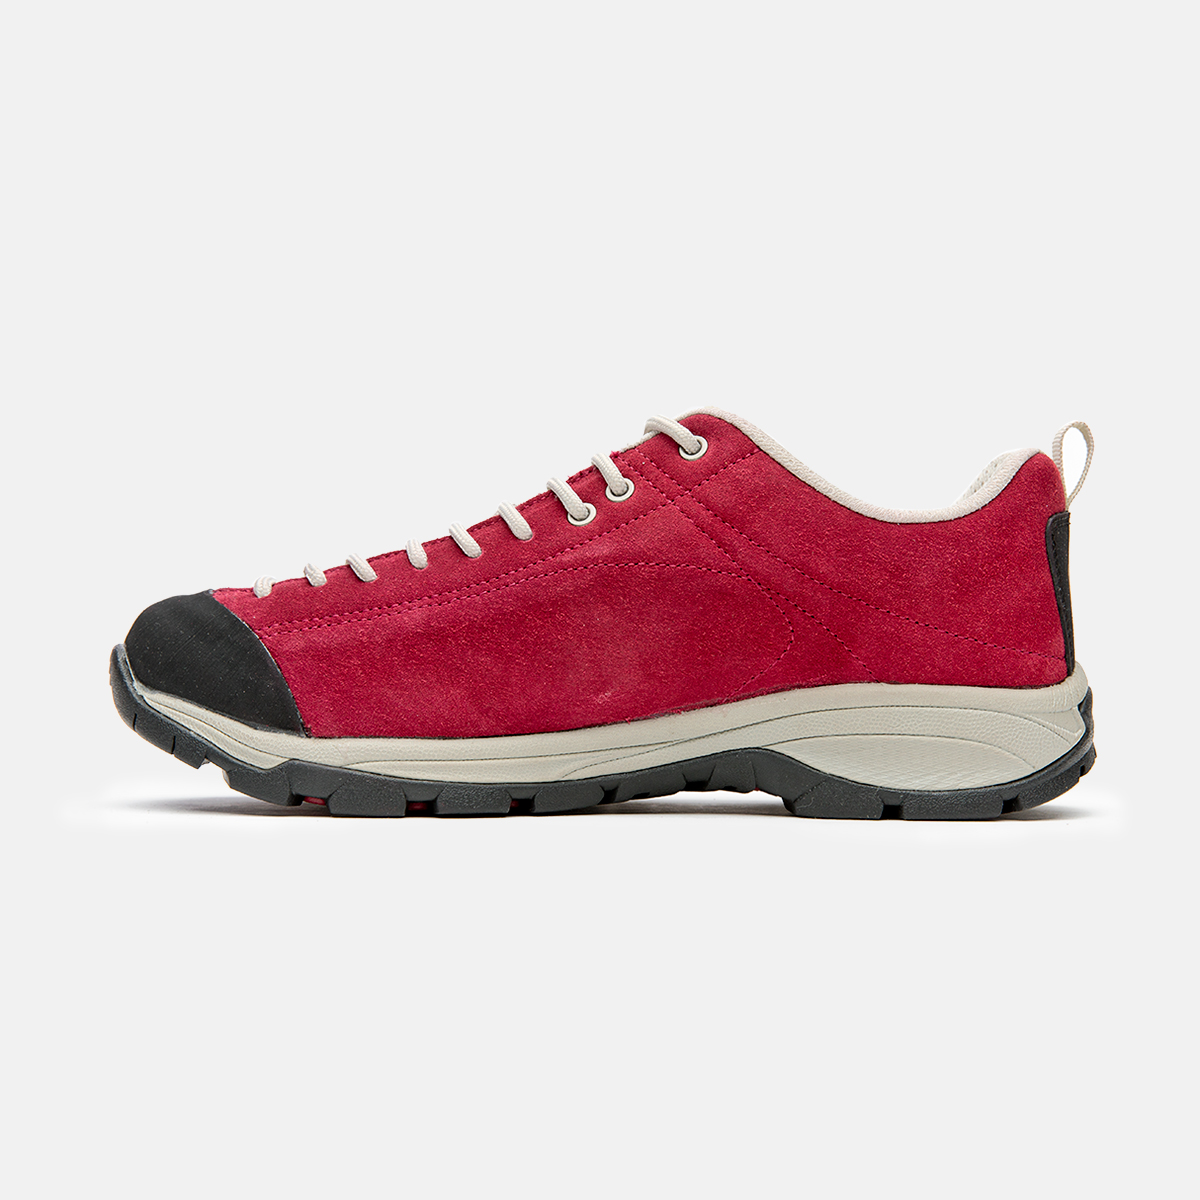 ZORGE MINERAL RED MAN'S